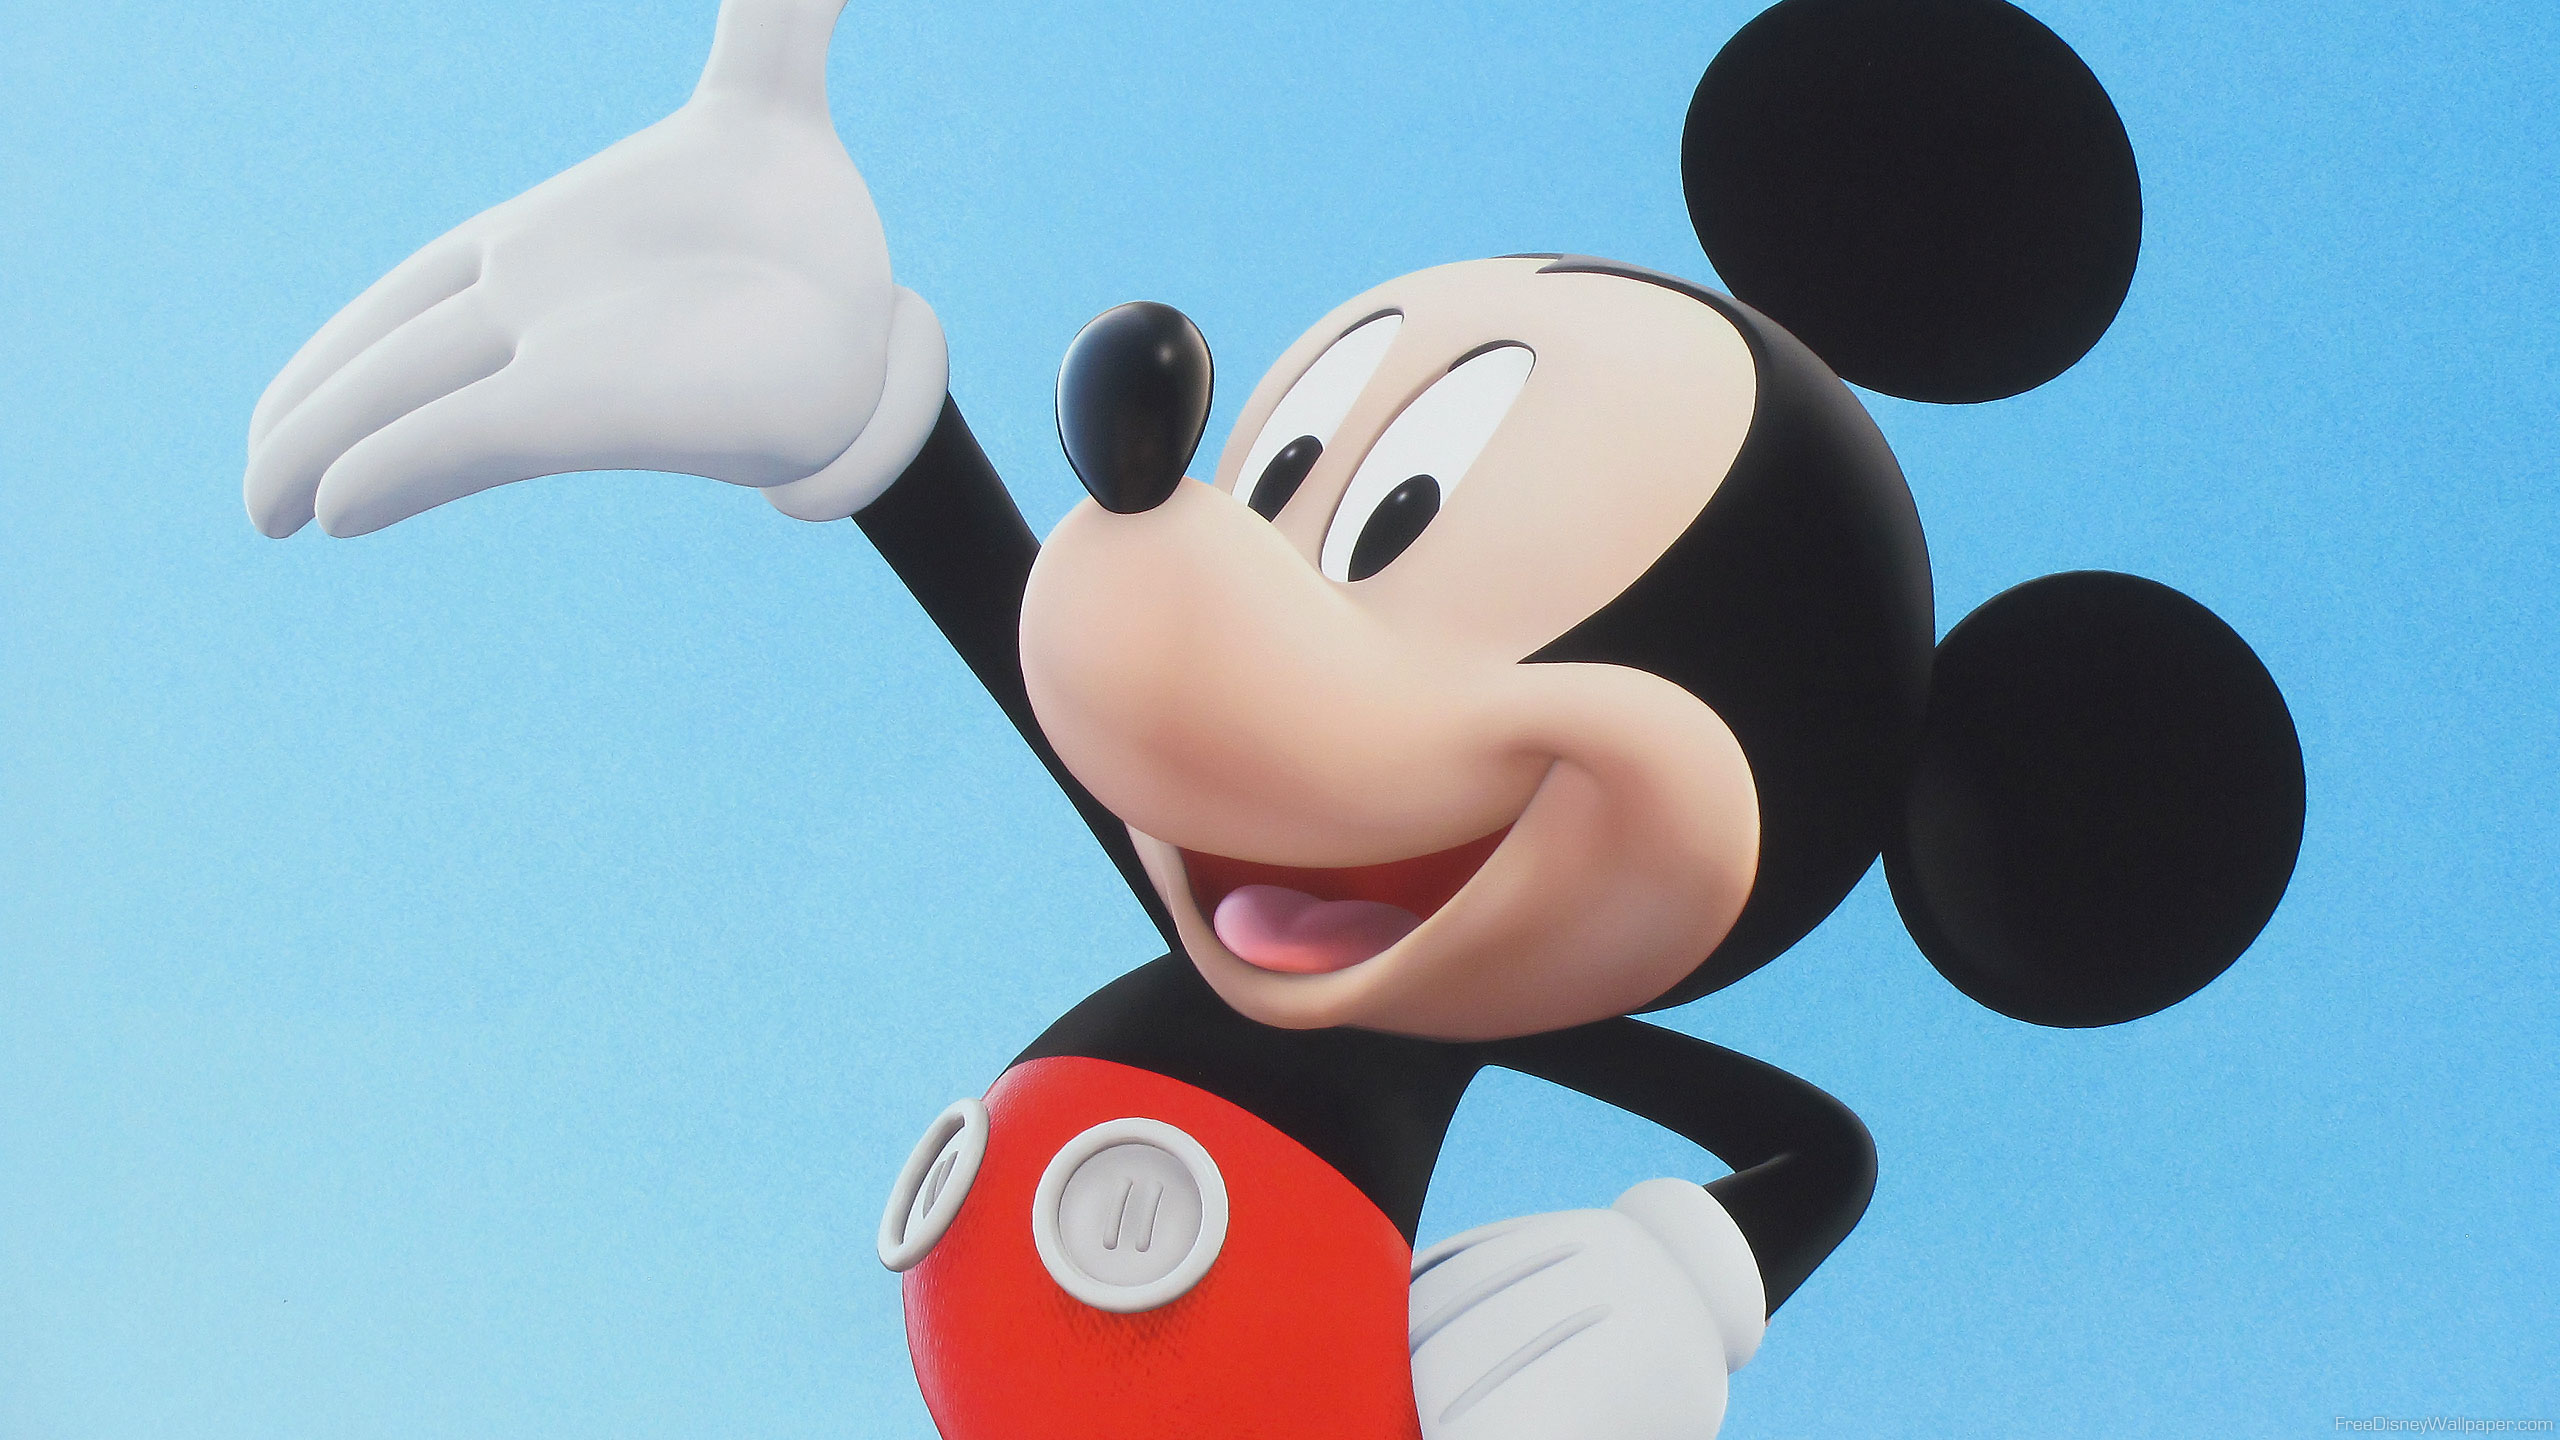 mickey mouse 3d wallpaper #17